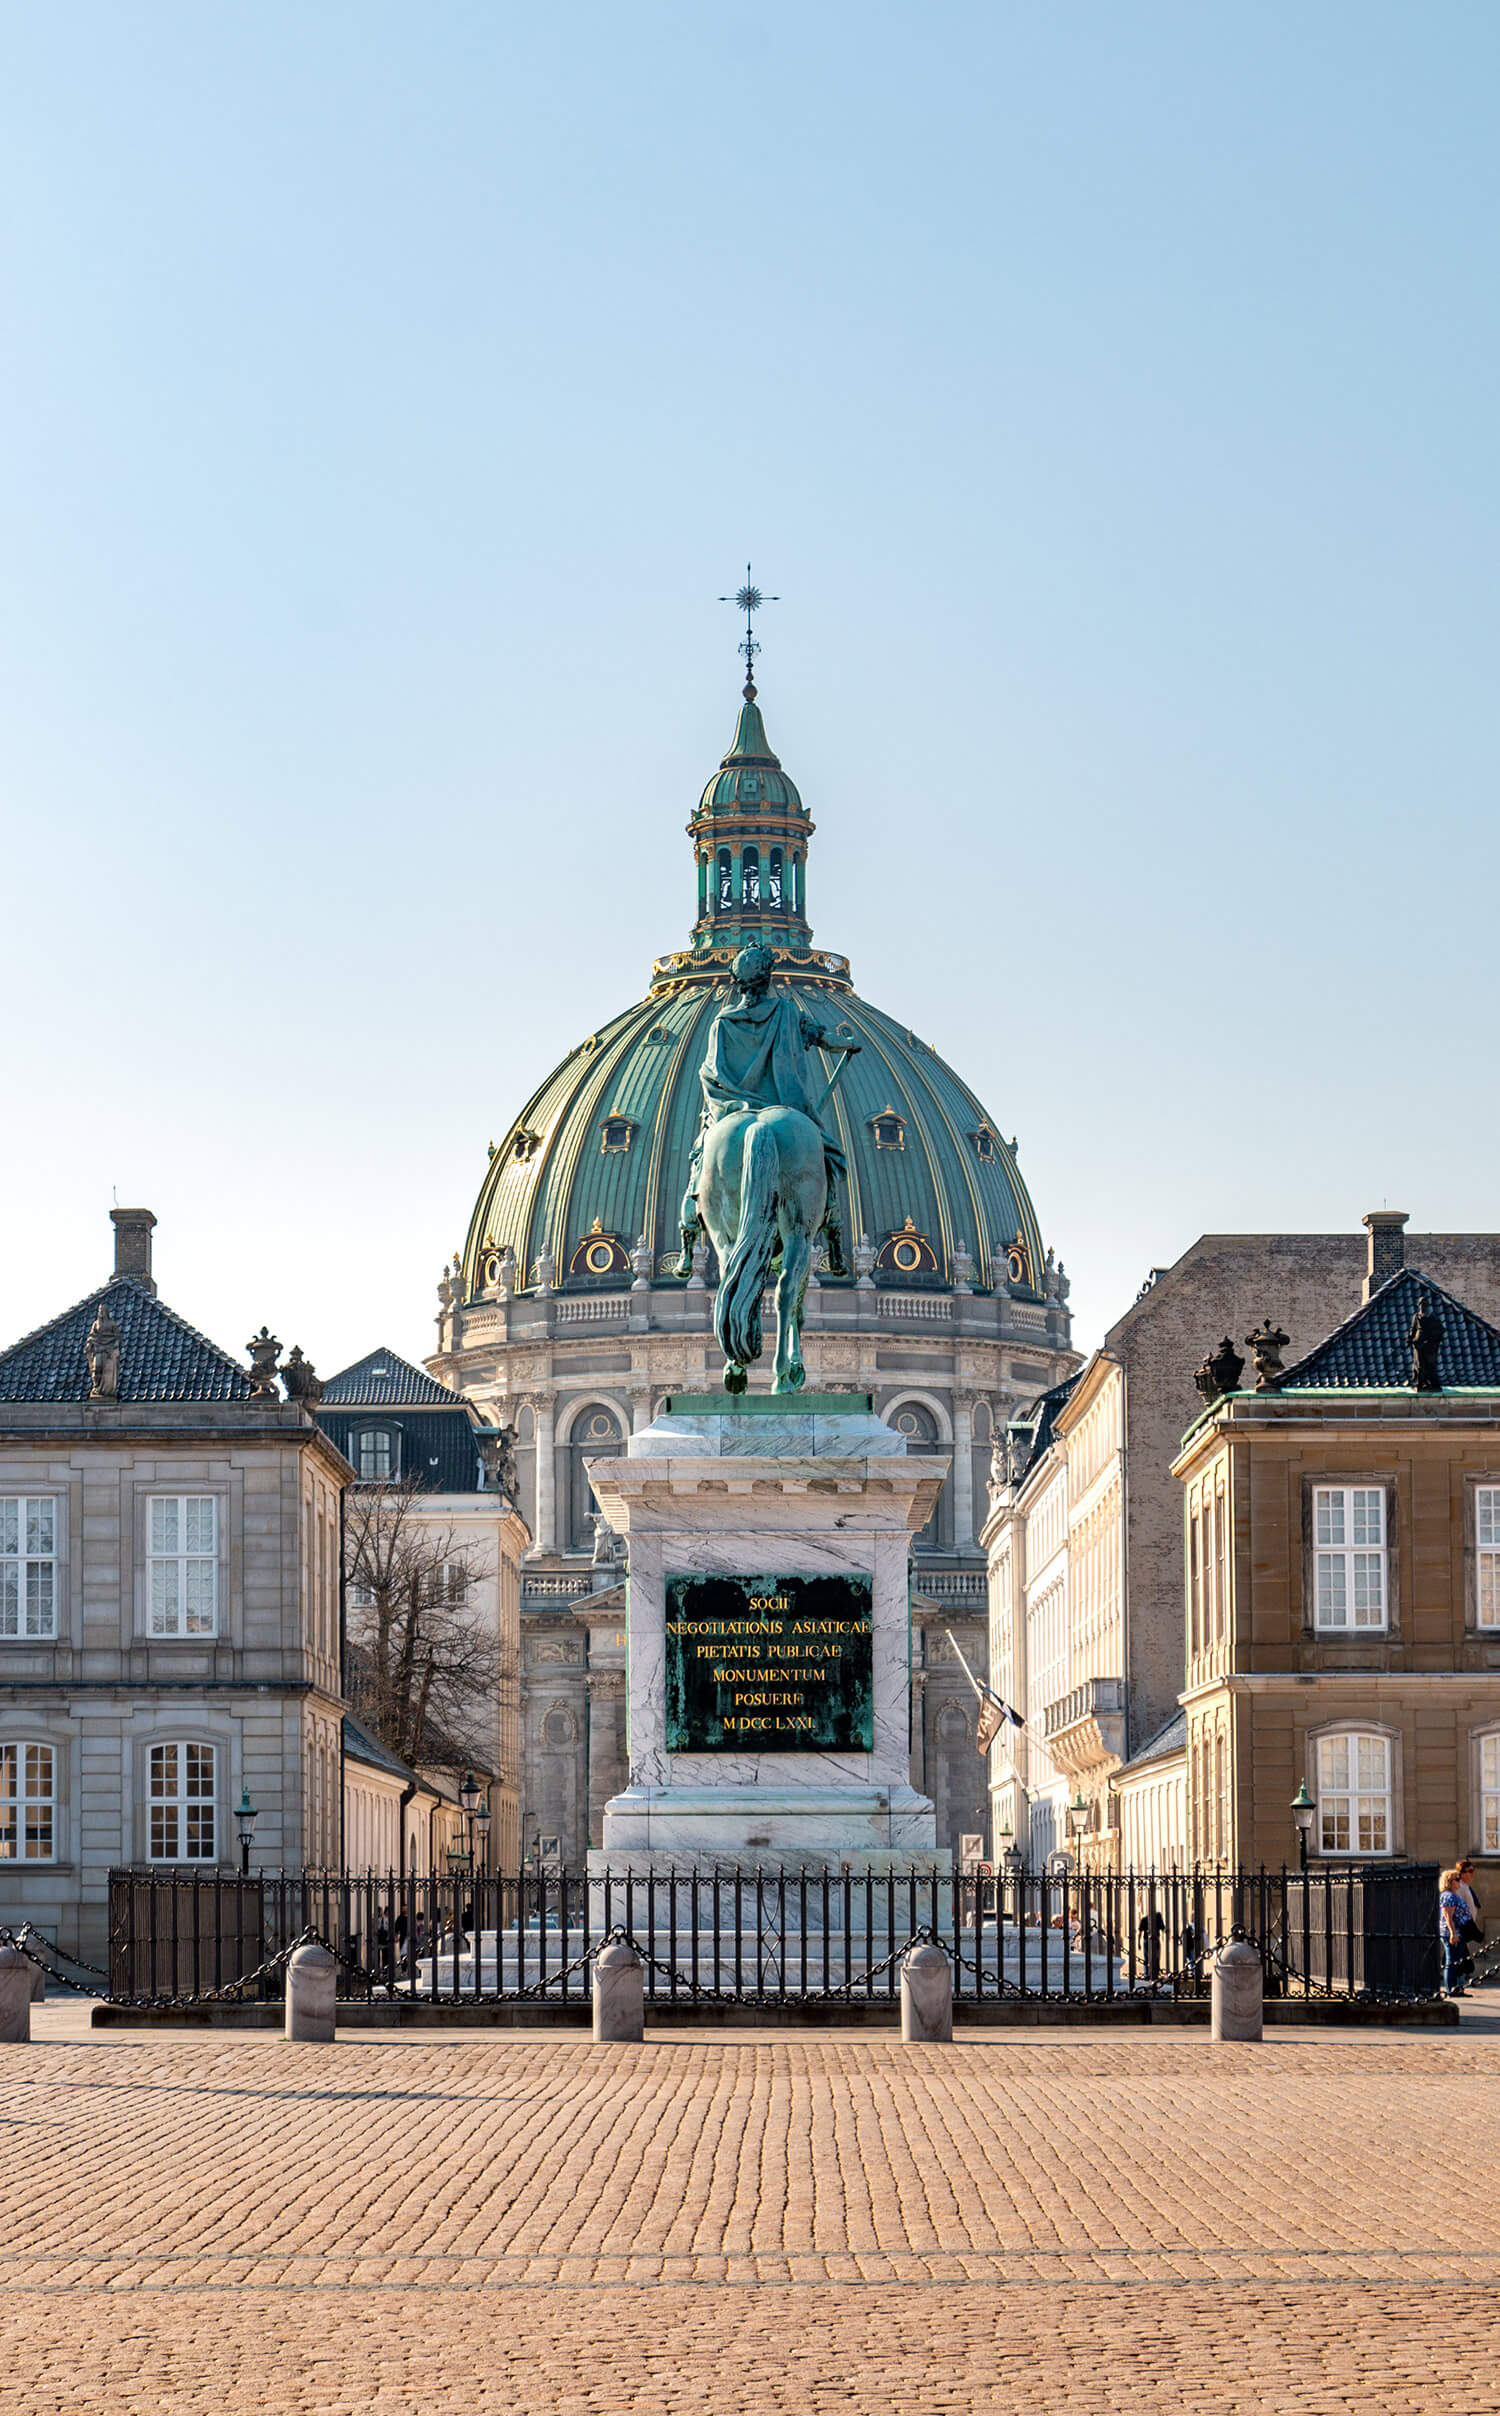 Amalienborg Palace and the Frederick's Church